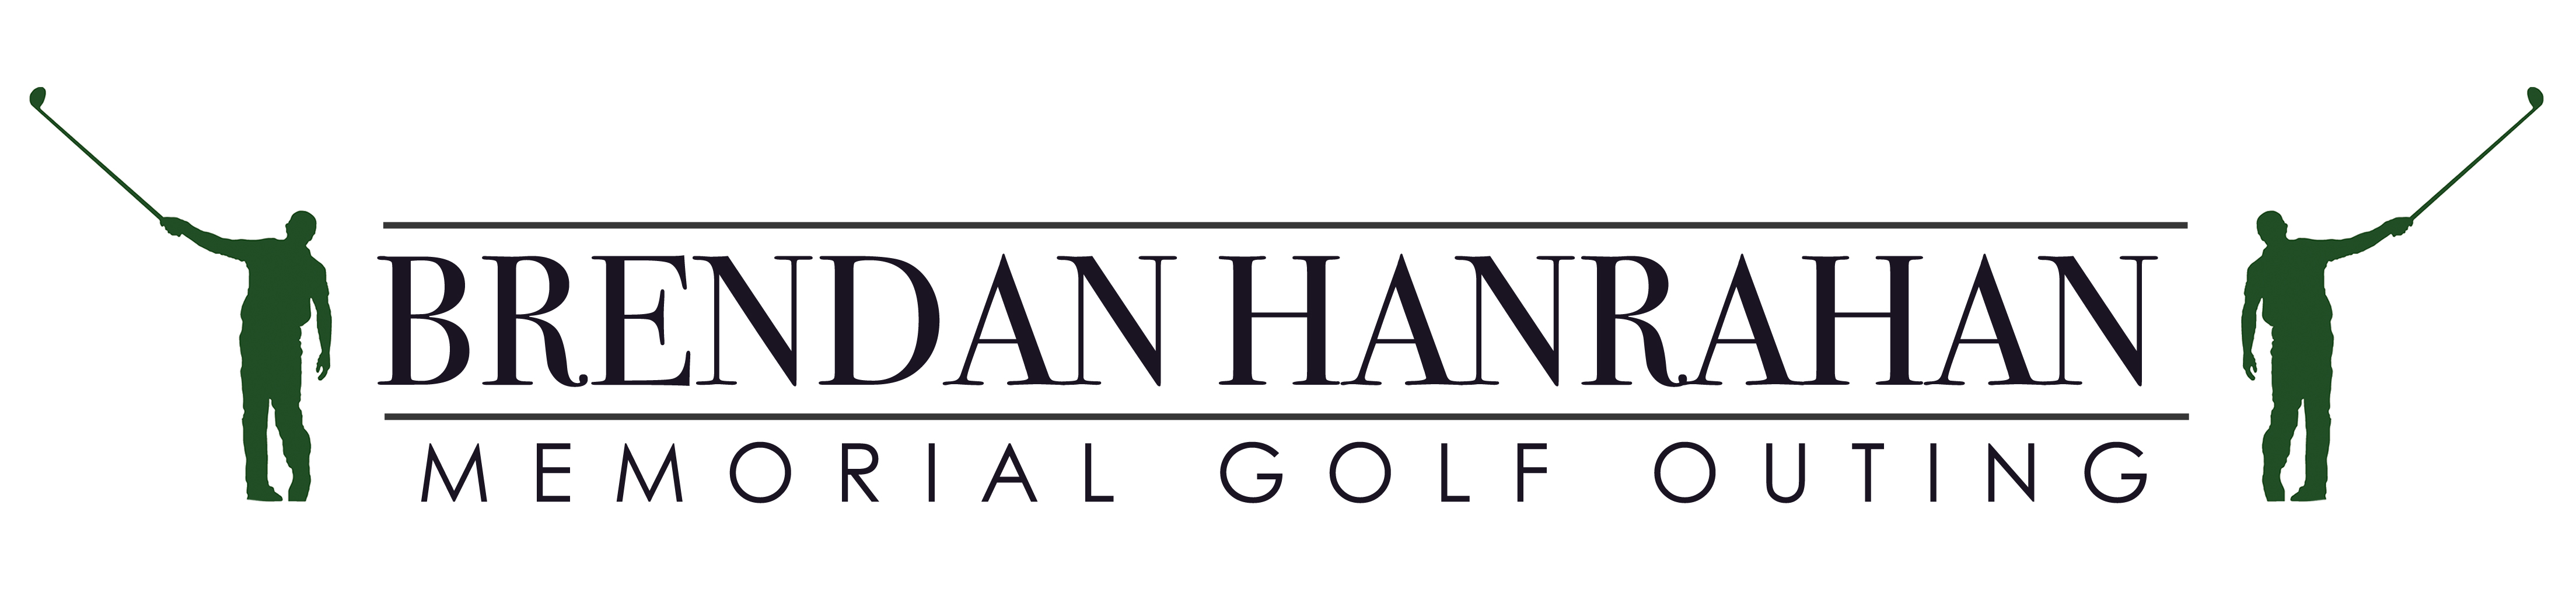 Brendan Hanrahan Memorial Golf Outing